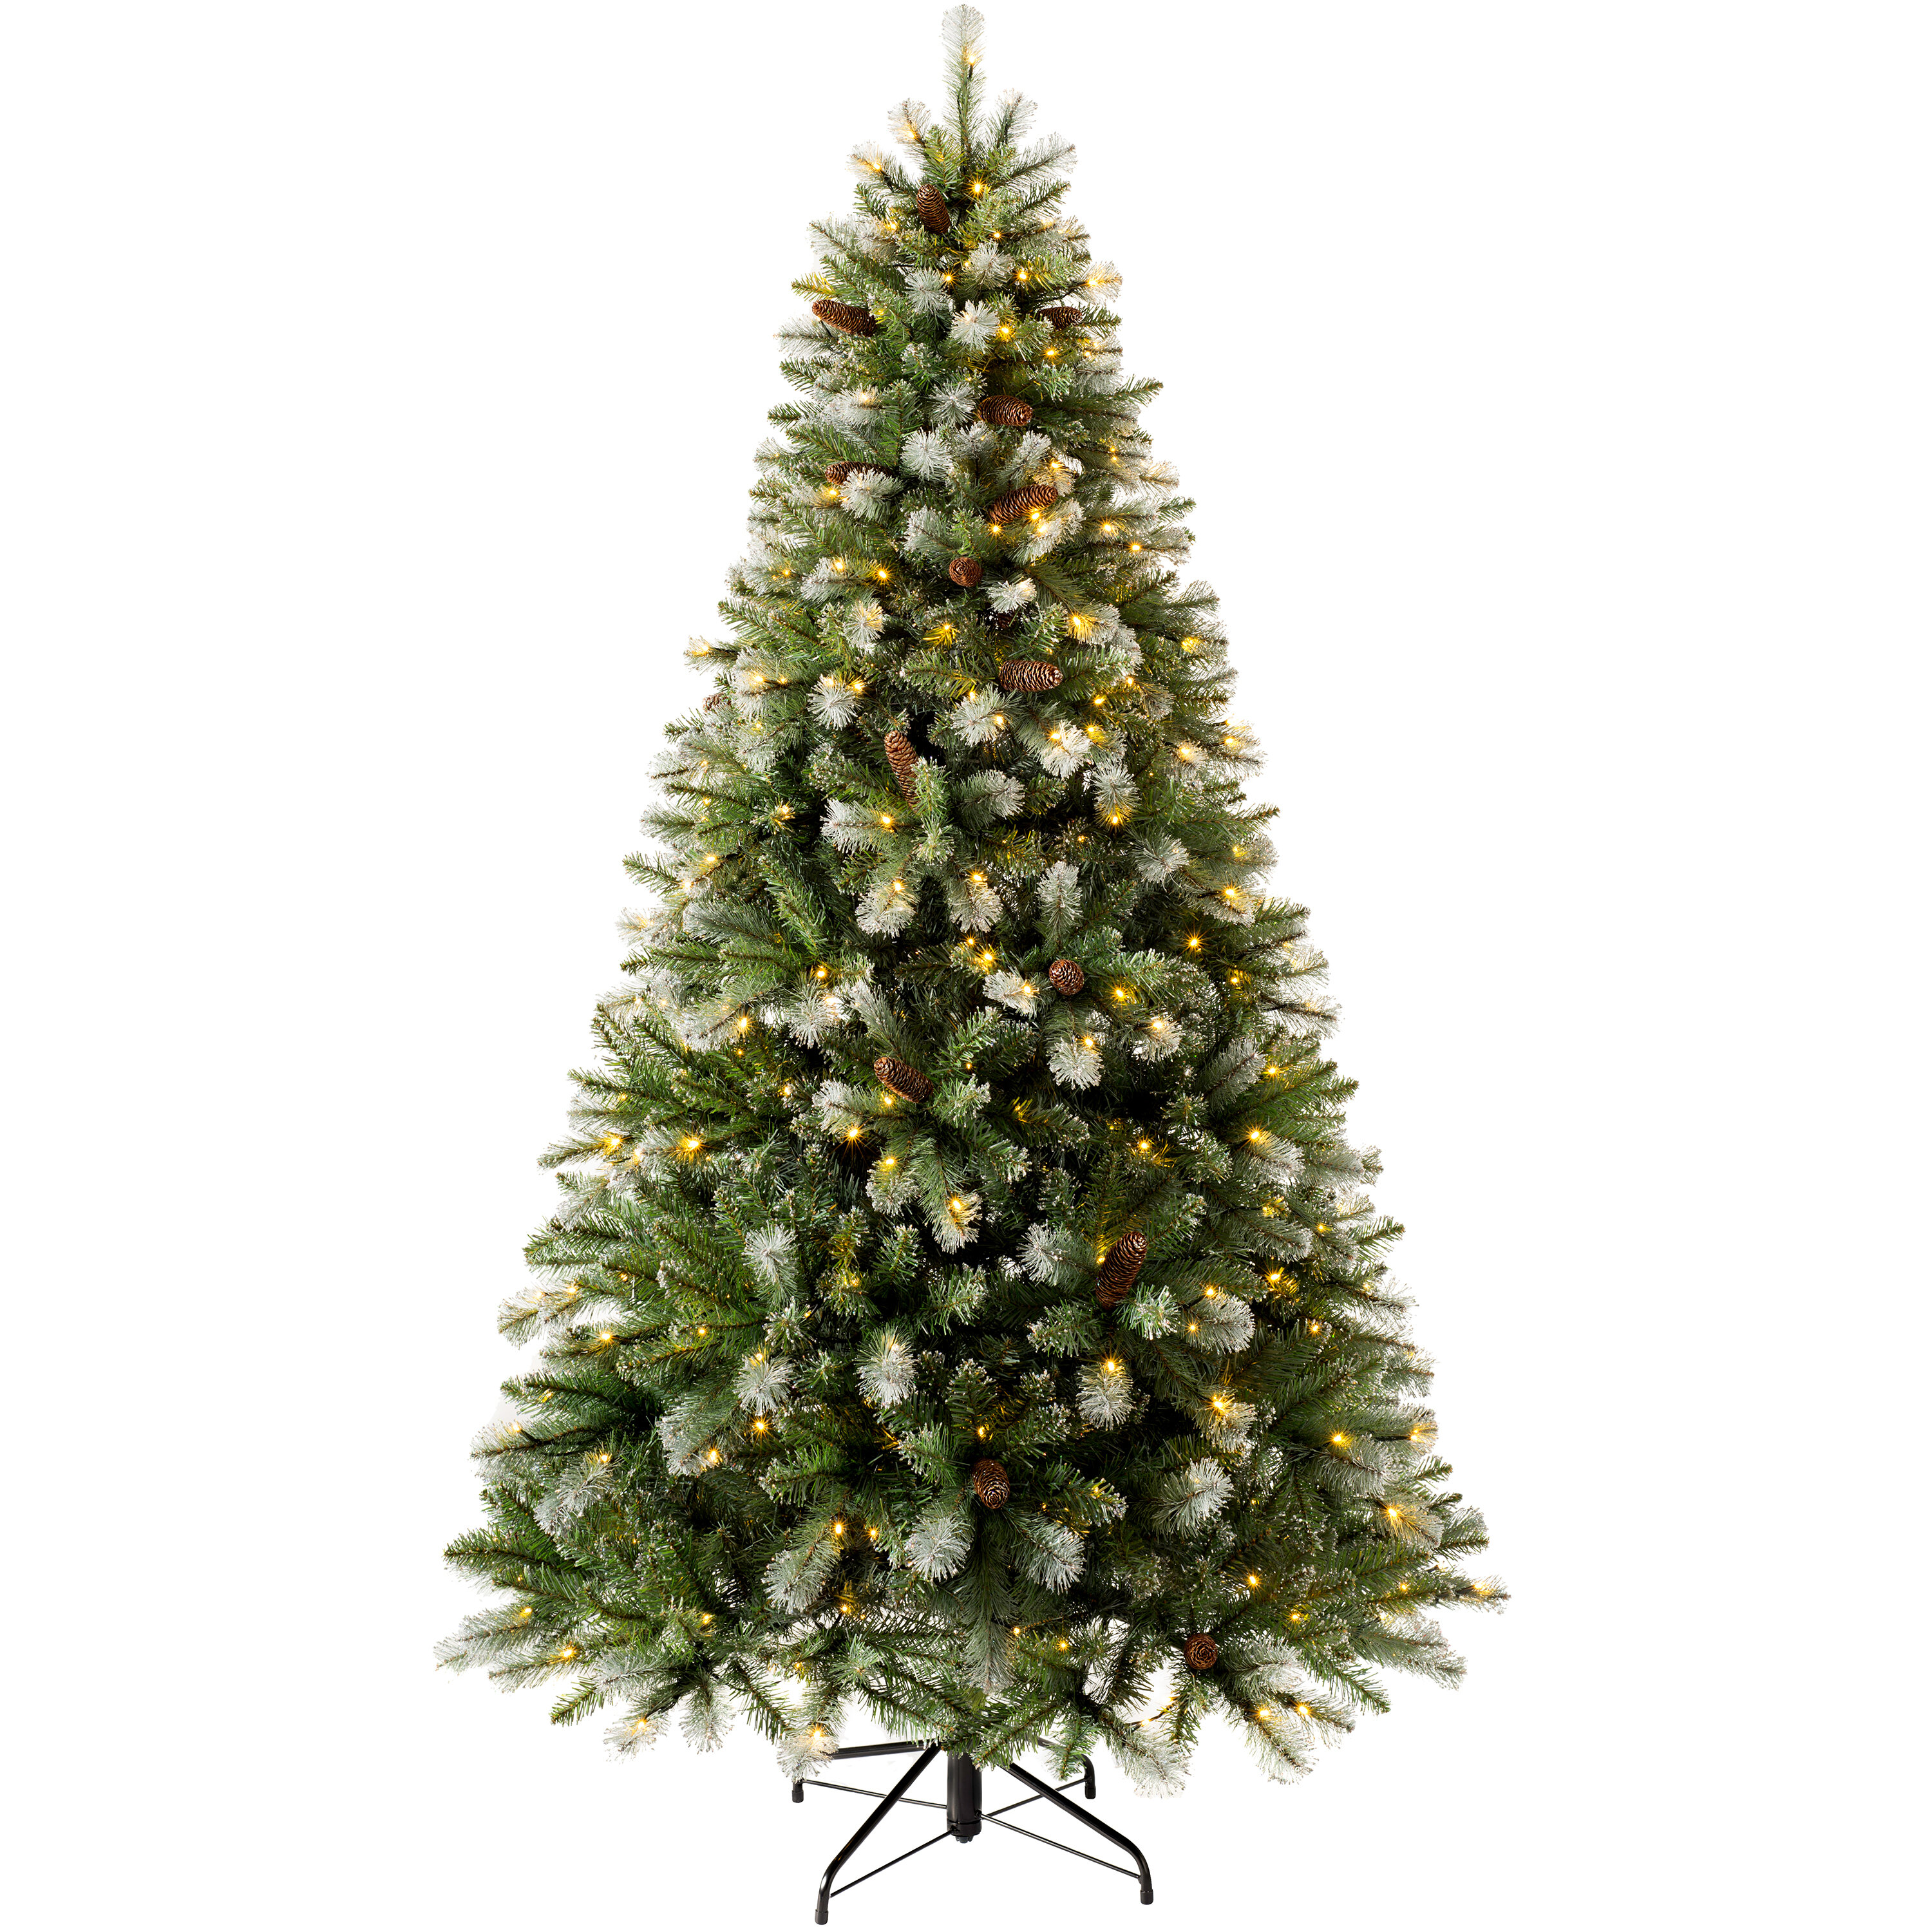 The Seasonal Aisle 6ft Green Spruce Artificial Christmas Tree With 300 Clear And White Lights Reviews Wayfair Co Uk